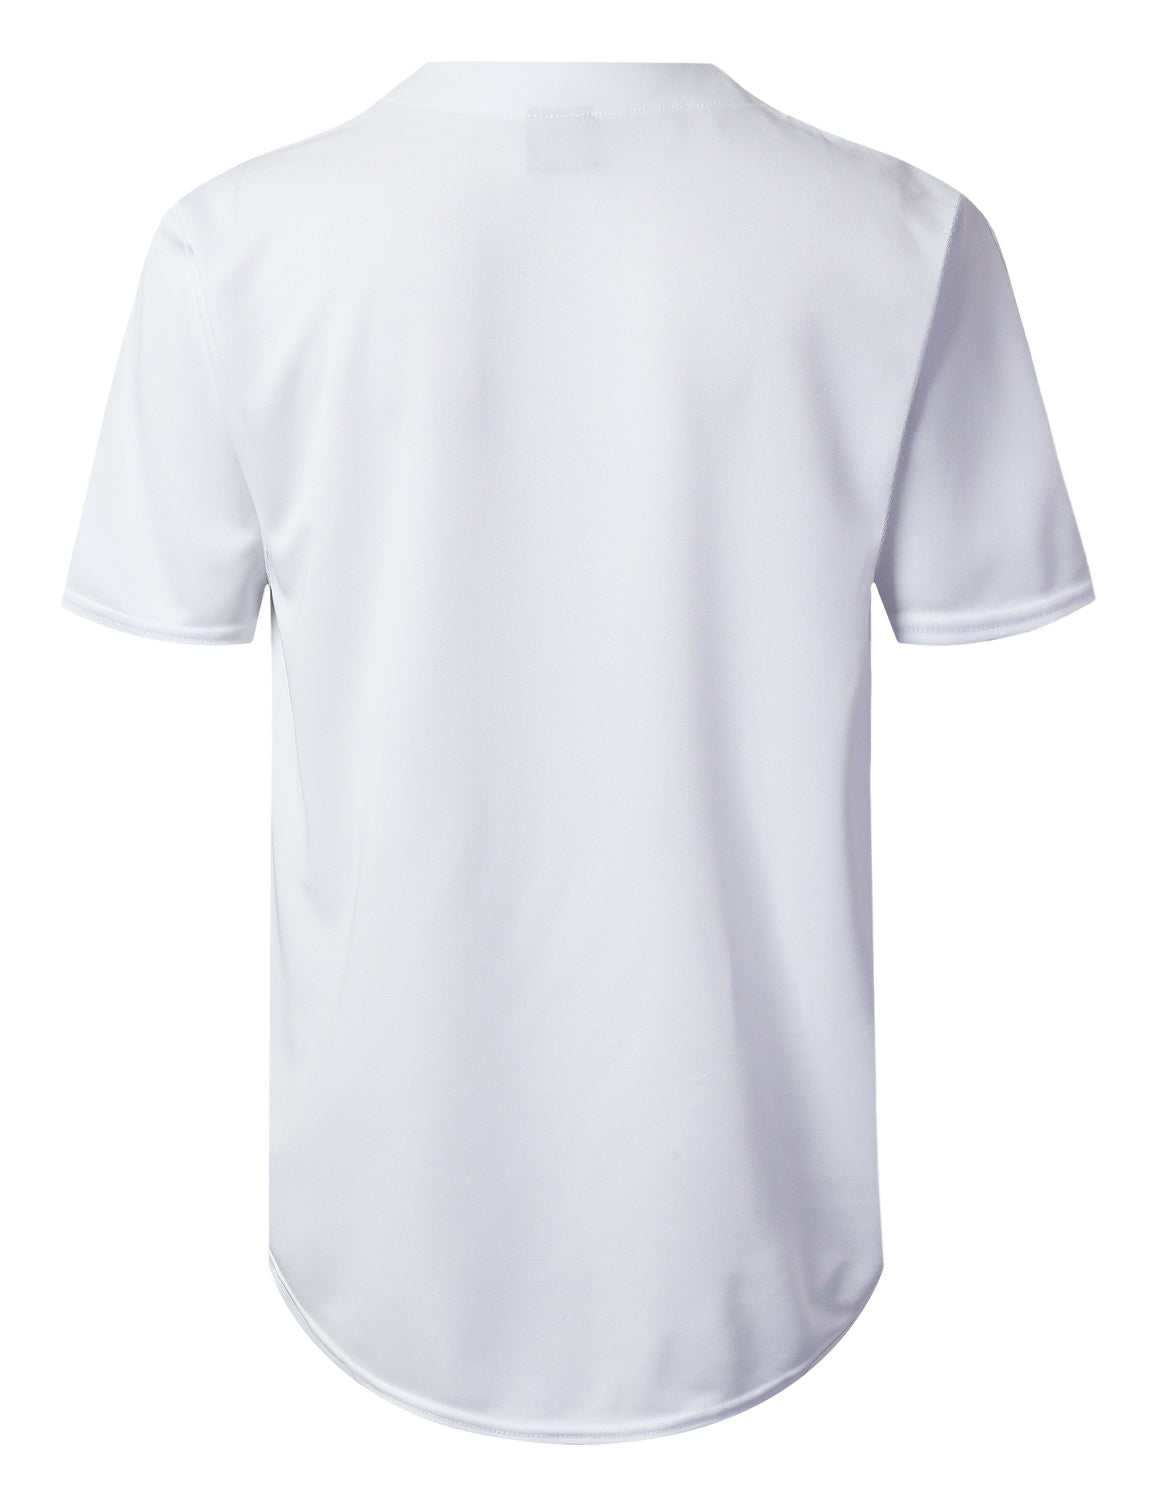 WHITE Basic Solid Baseball Jersey Shirt - URBANCREWS